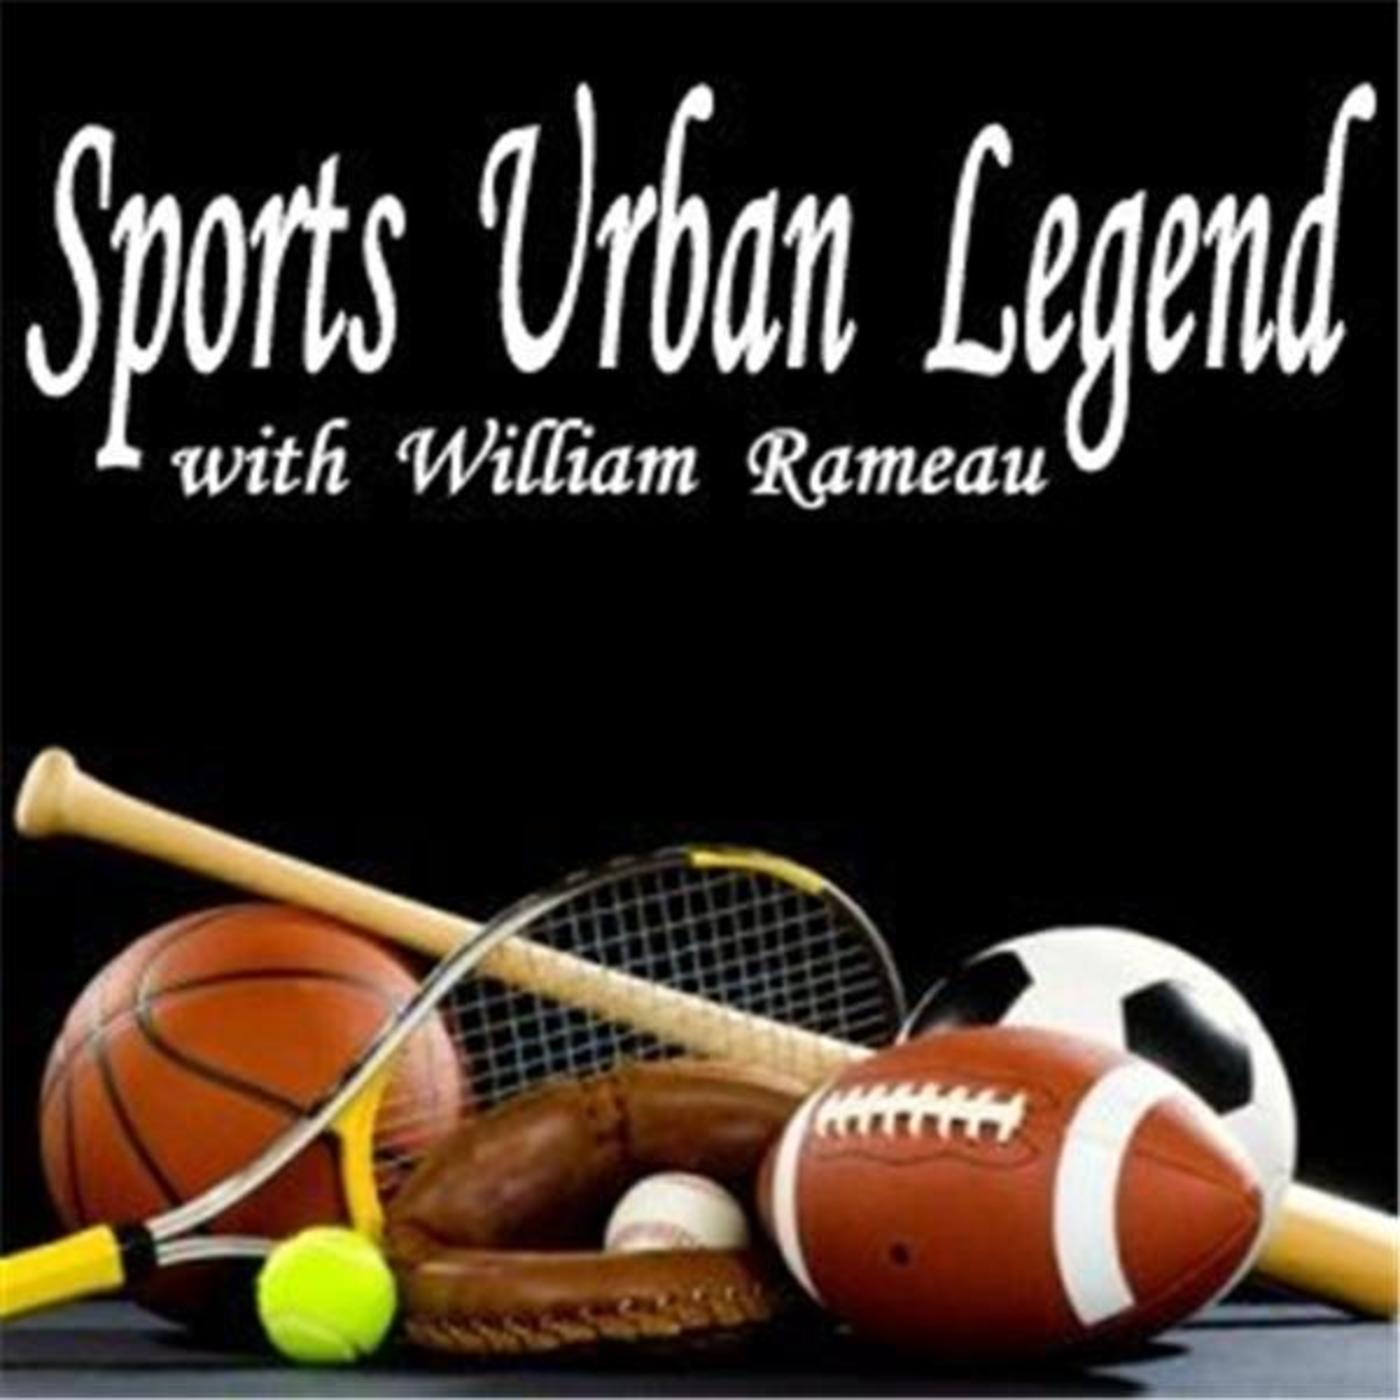 Sports  Urban  Legend